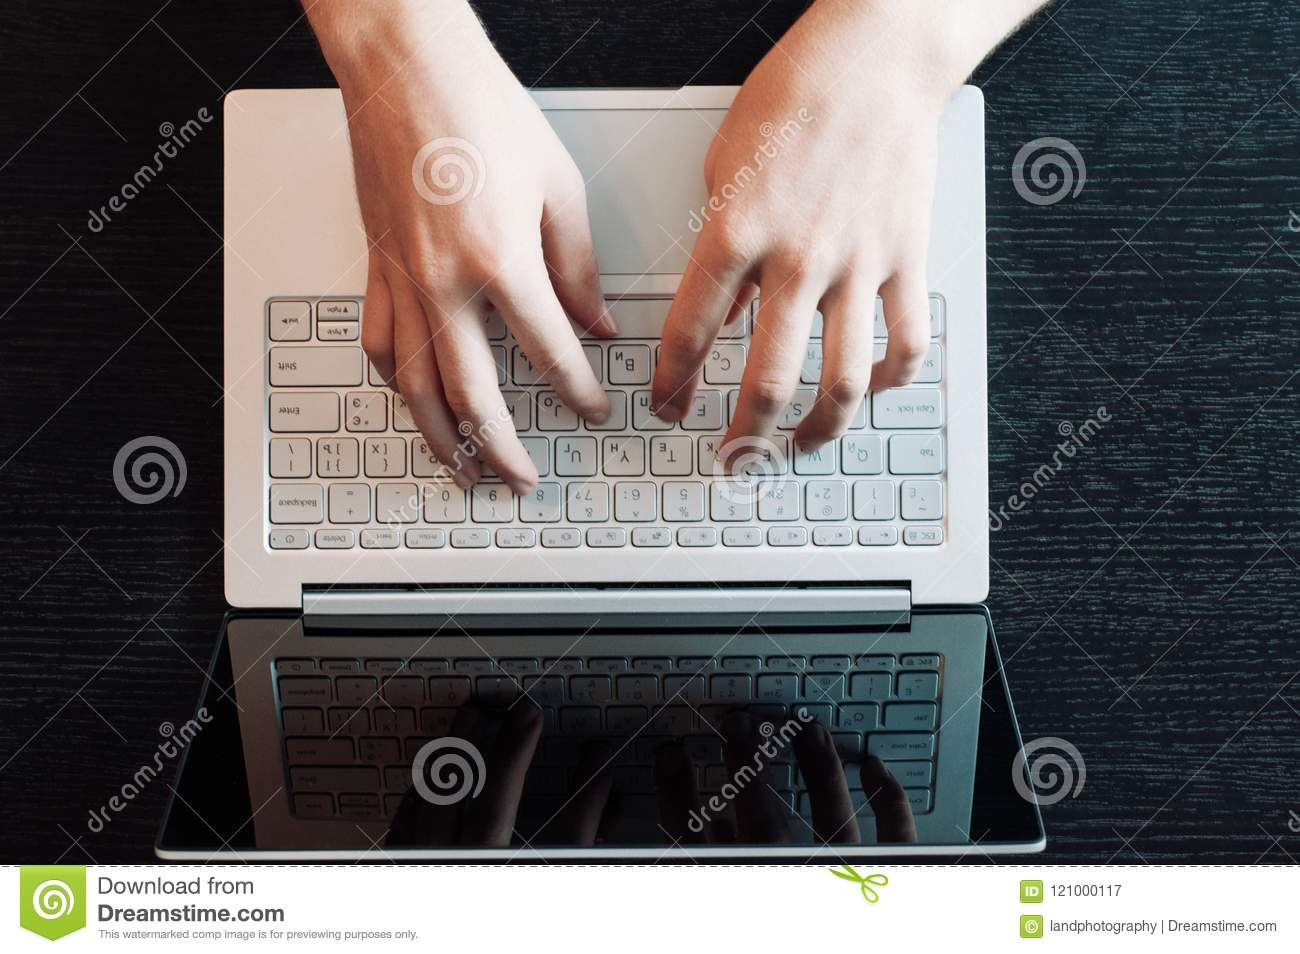 Computer Laptop Working Concept Hands Typing Keyboard